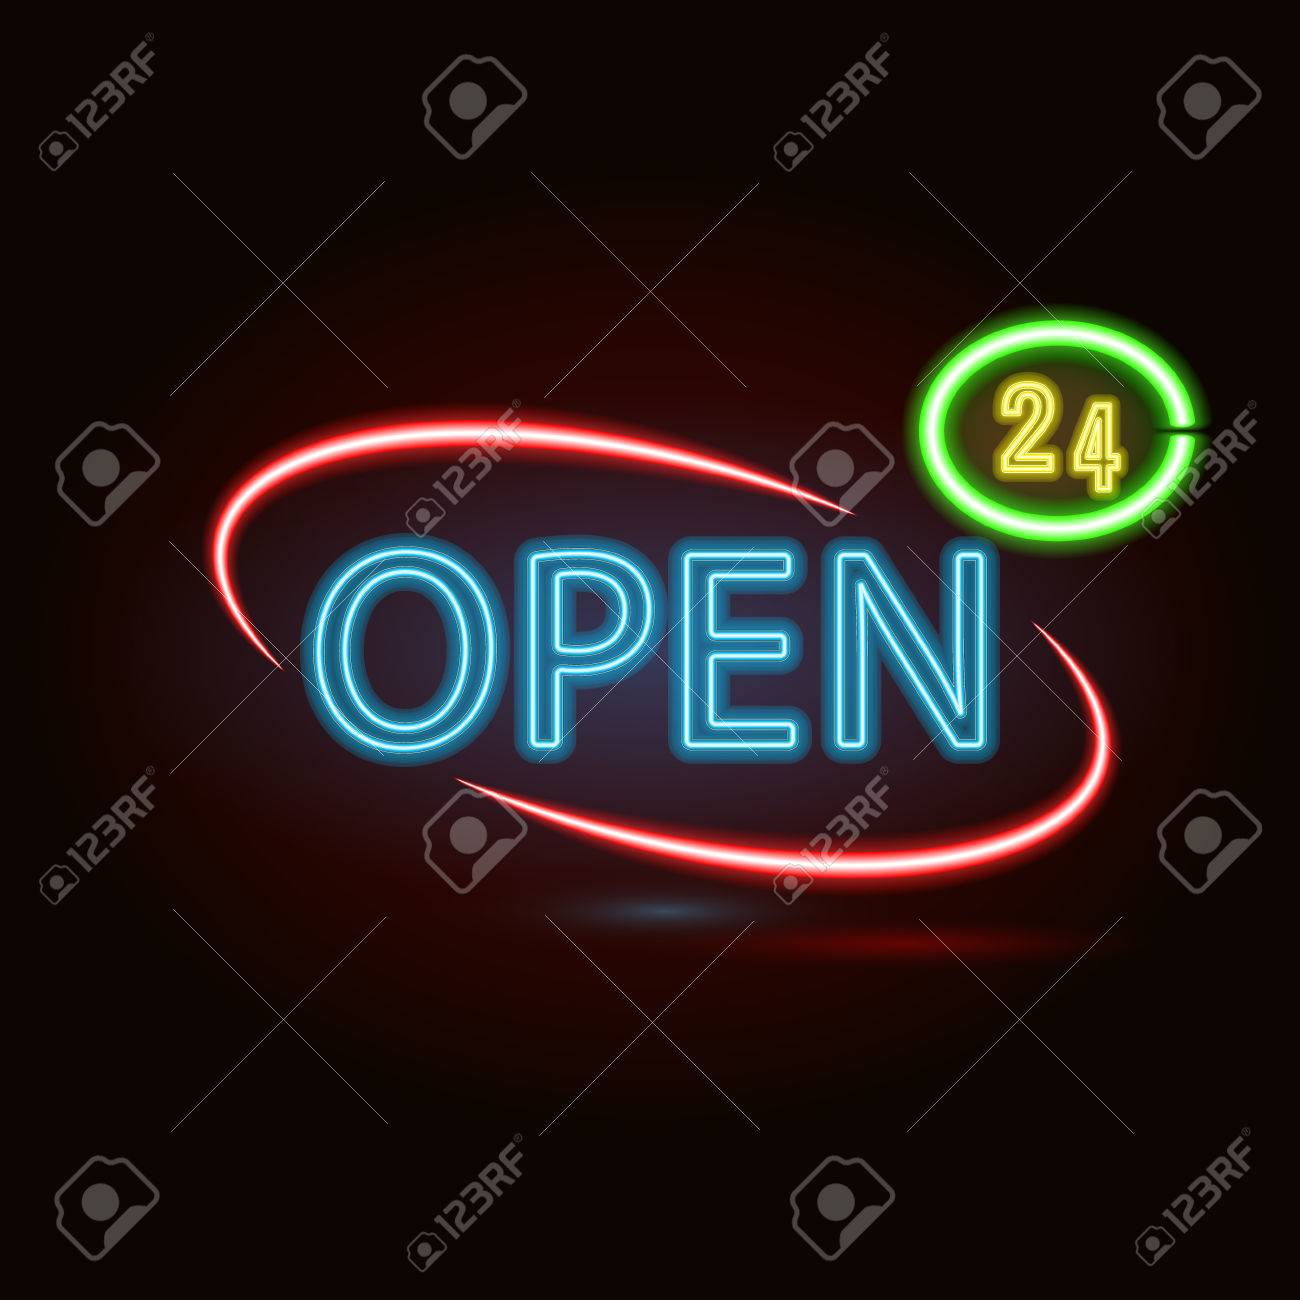 Neon sign with type bar open red and blue and yellow neon neon sign with type bar open red and blue and yellow neon lights stock mozeypictures Gallery